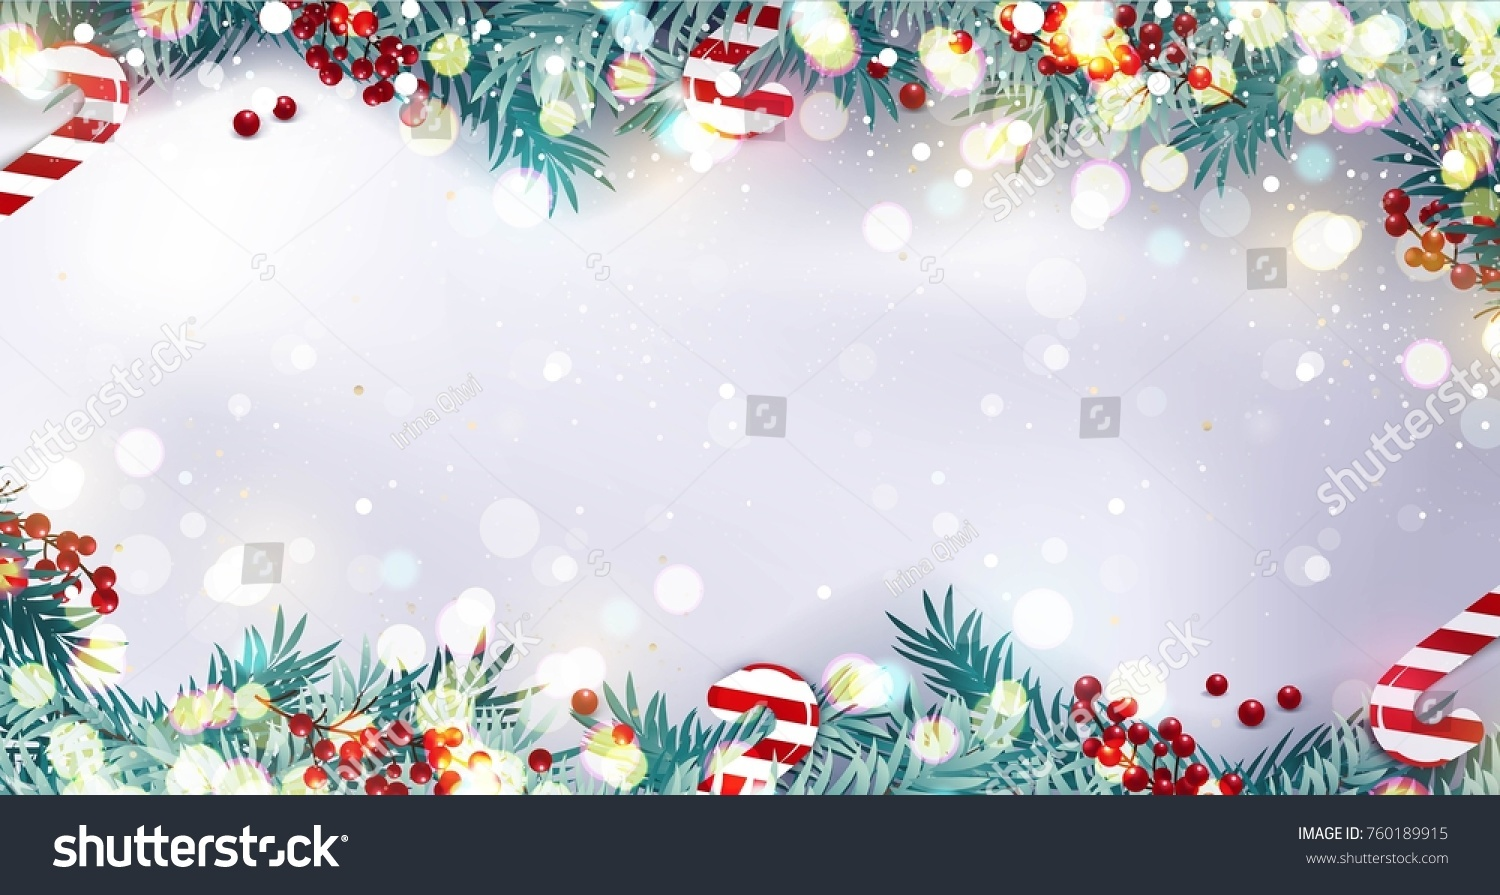 Christmas border or frame with fir branches, berries and candy isolated on snowy background. Vector illustration #760189915